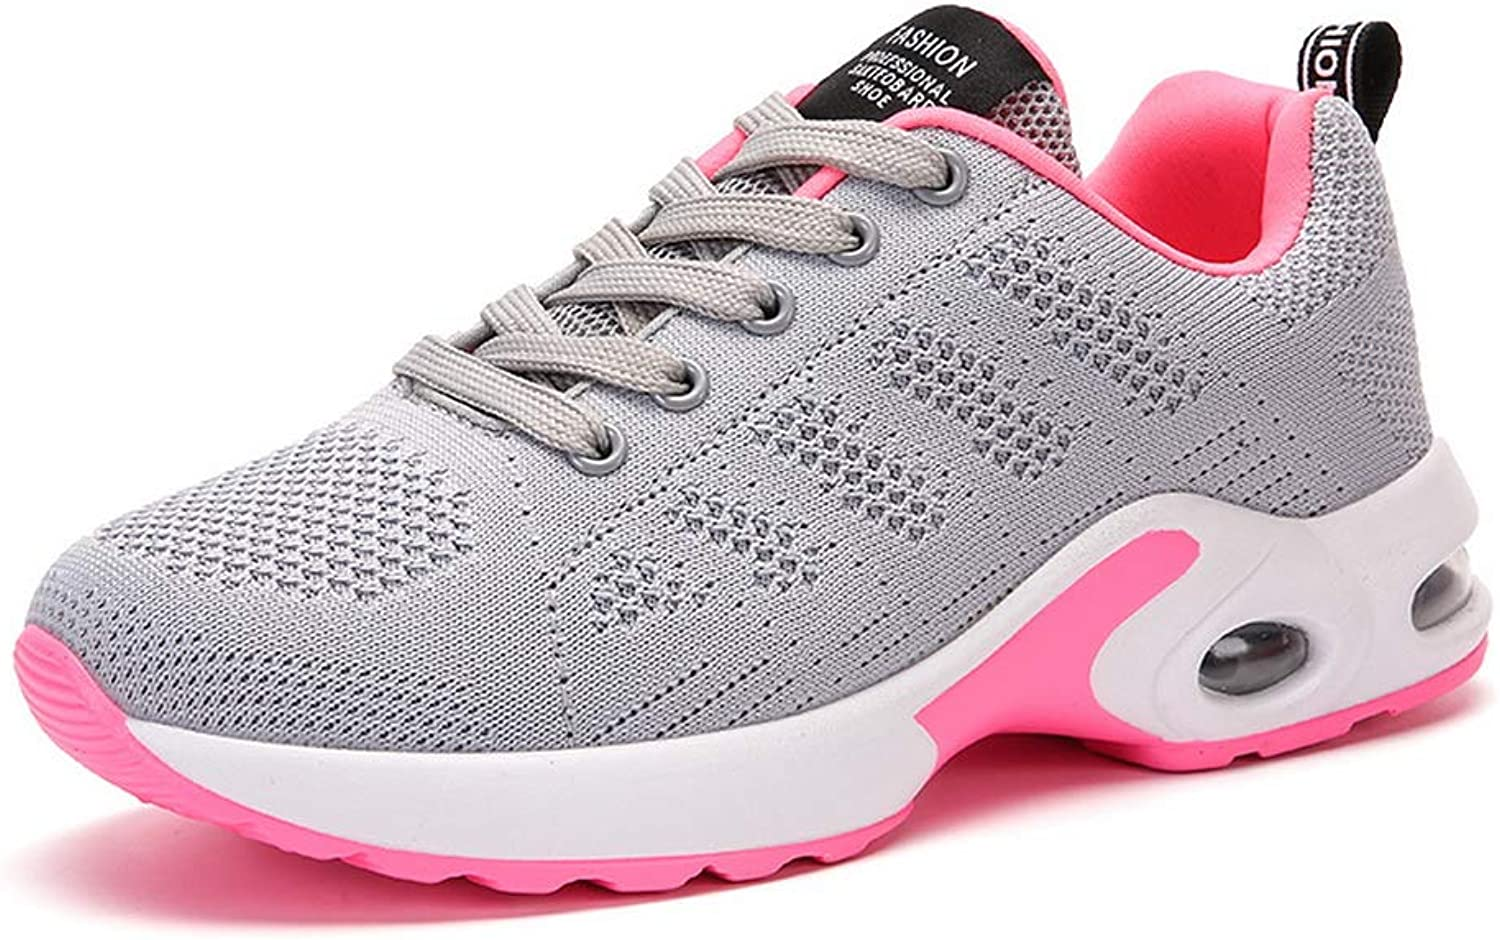 Sunjcs Women's Sports Running shoes Lightweight Athletic Tennis Walking Casual Daily Sneakers